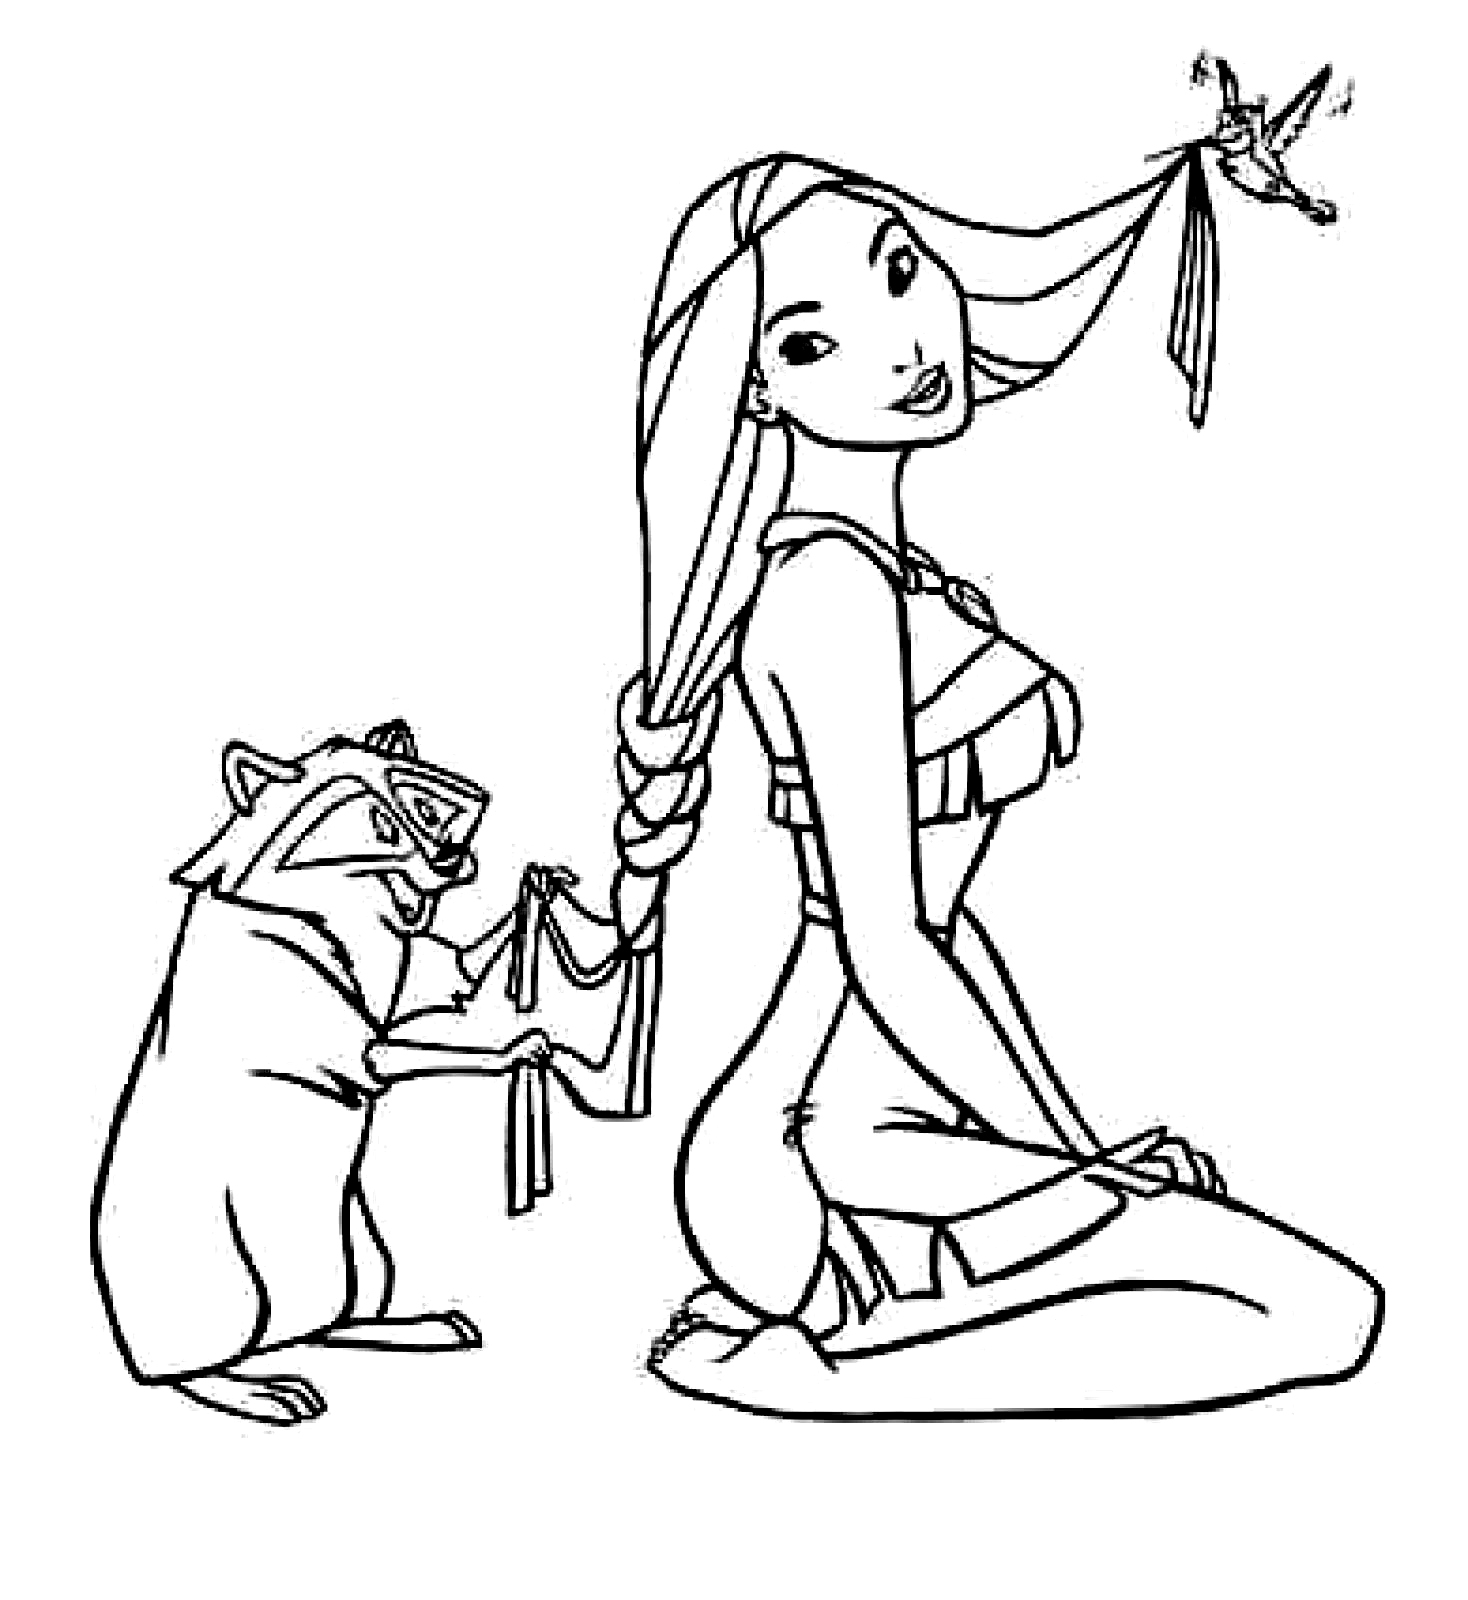 coloring pages pocahontas - photo#15